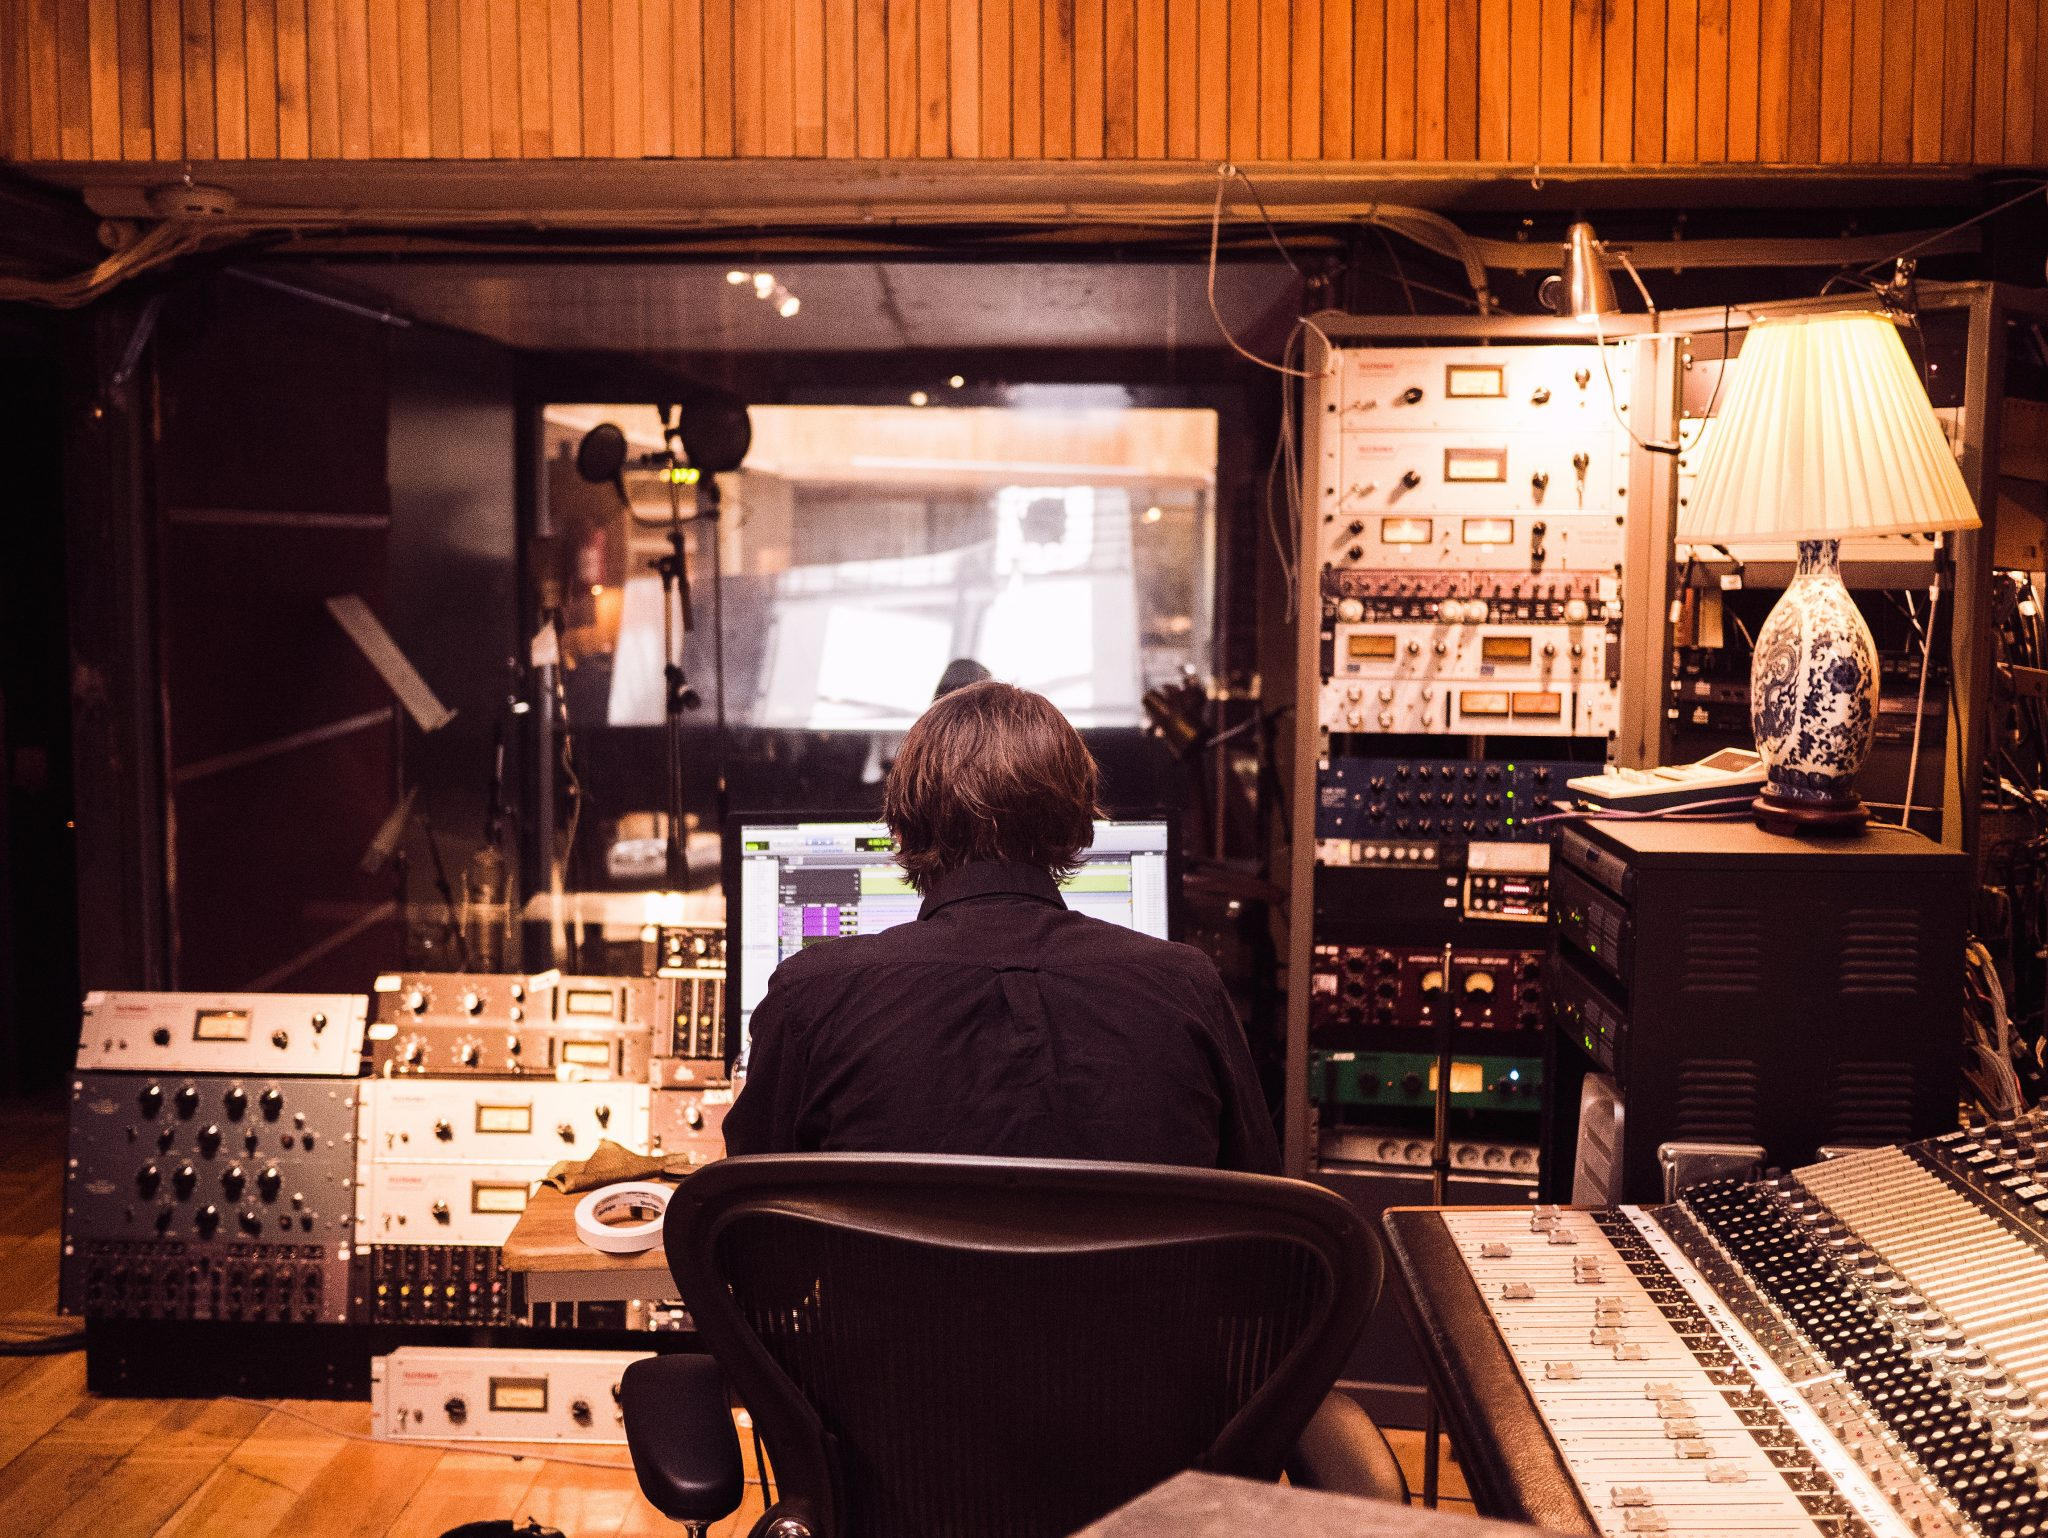 Analog Recording Workflow With Outboard Gear